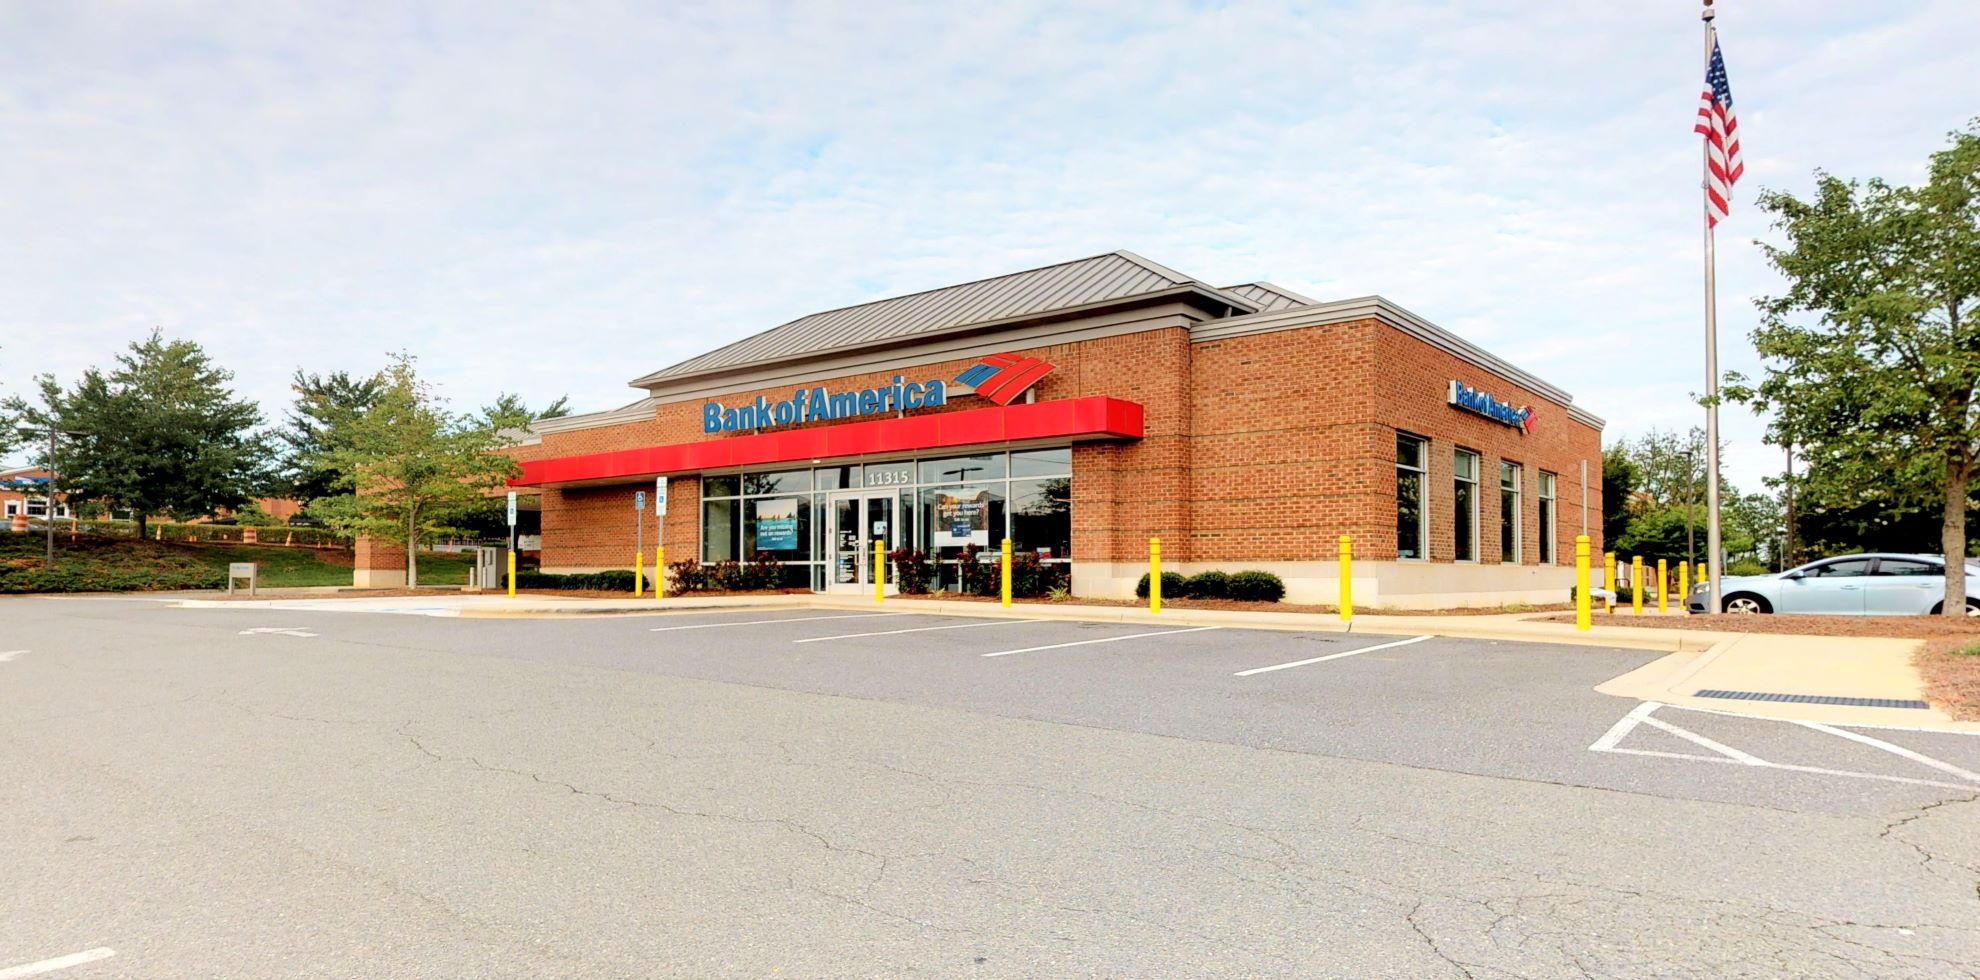 Bank of America financial center with drive-thru ATM | 11315 Golf Links Dr N, Charlotte, NC 28277